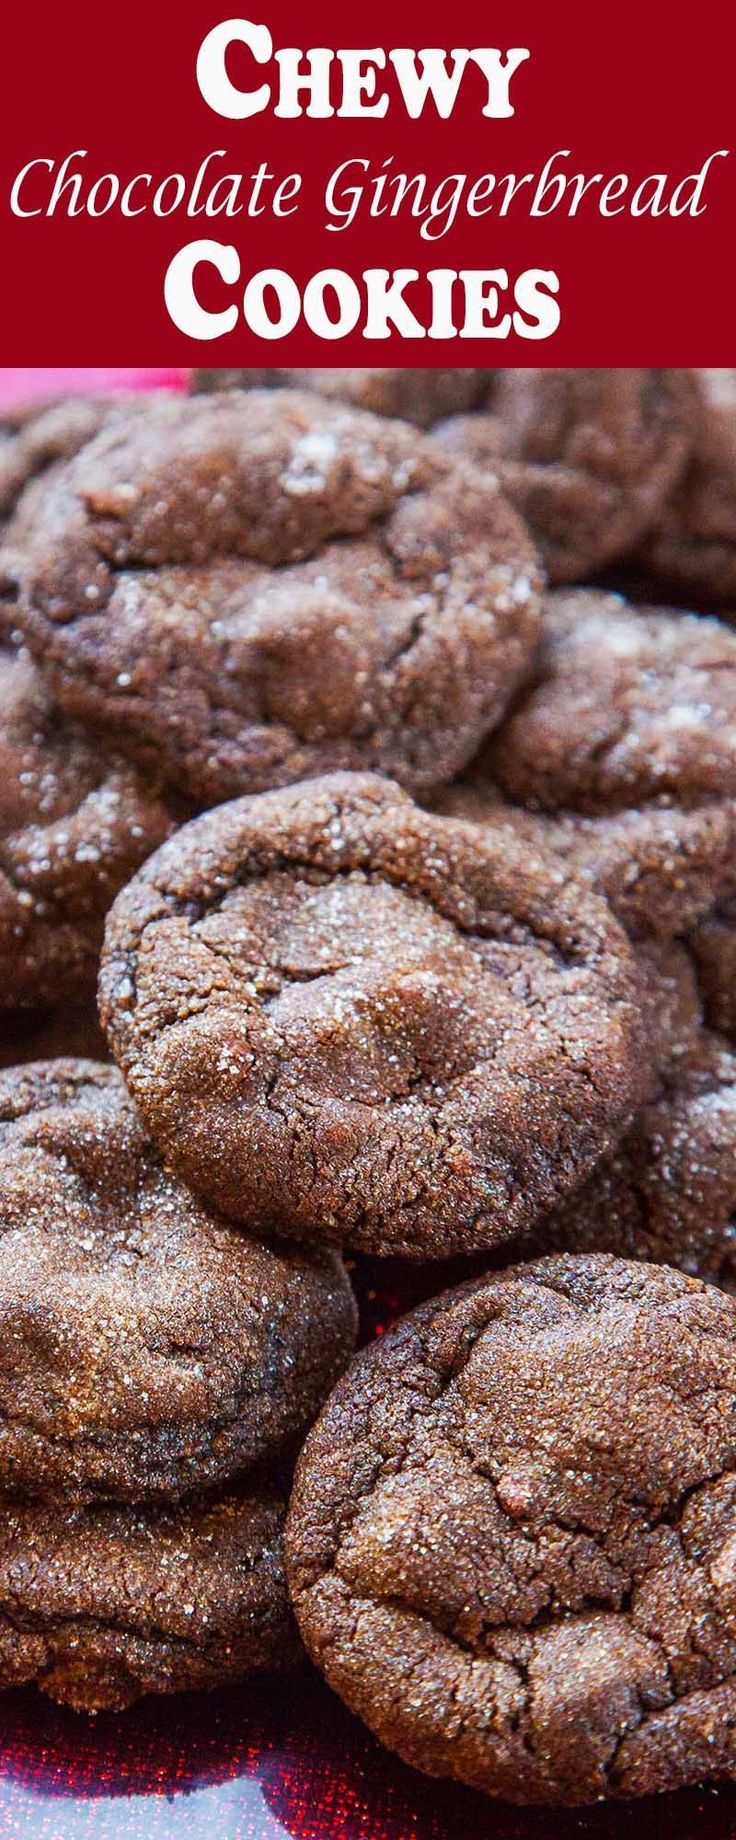 Soft, chewy chocolate gingerbread cookies! Made with dark chocolate, cocoa powder, and fresh ginger.